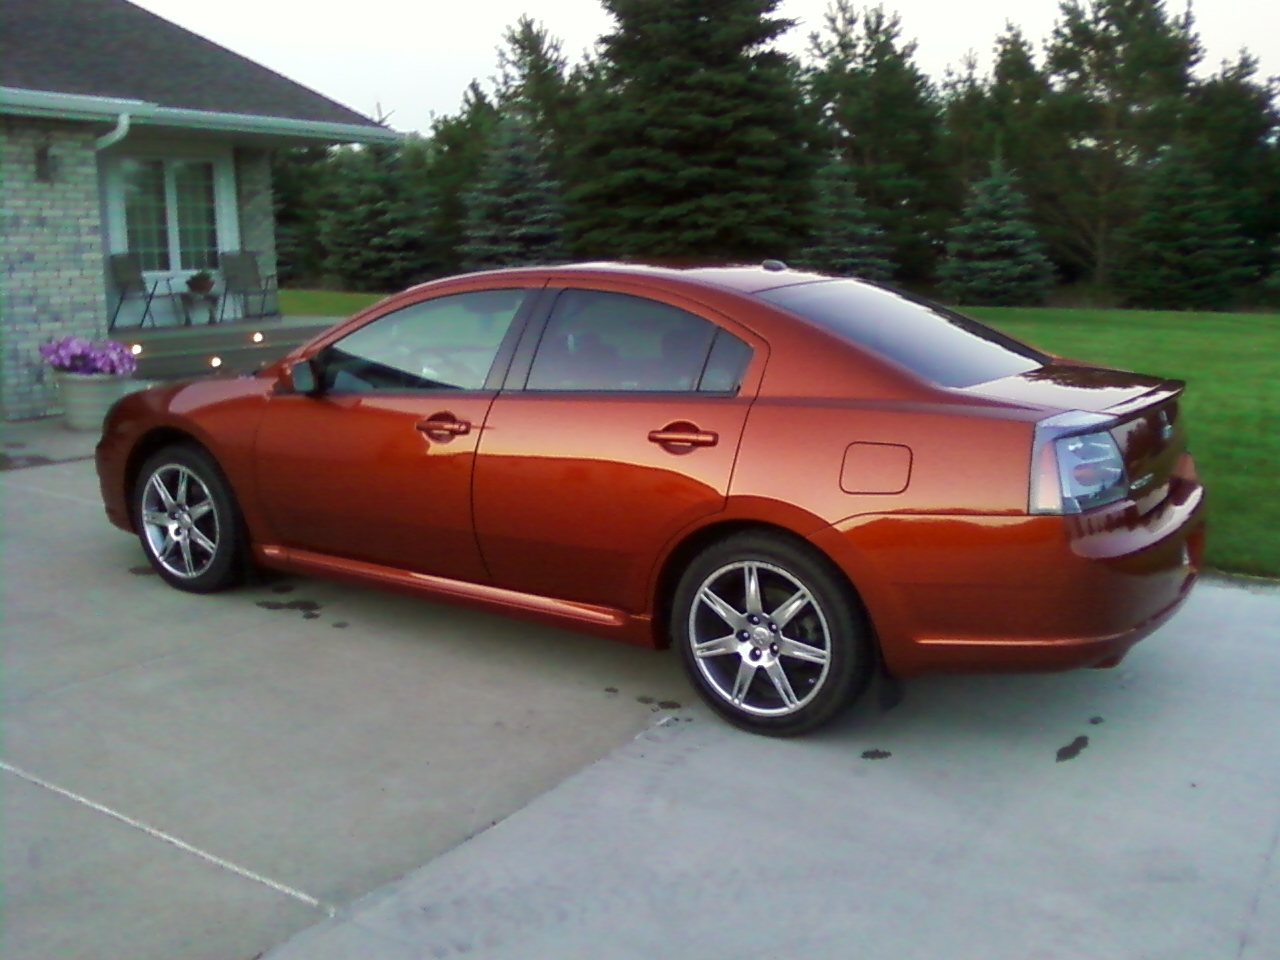 2007 Mitsubishi Galant Specs, Pictures, Trims, Colors || Cars.com